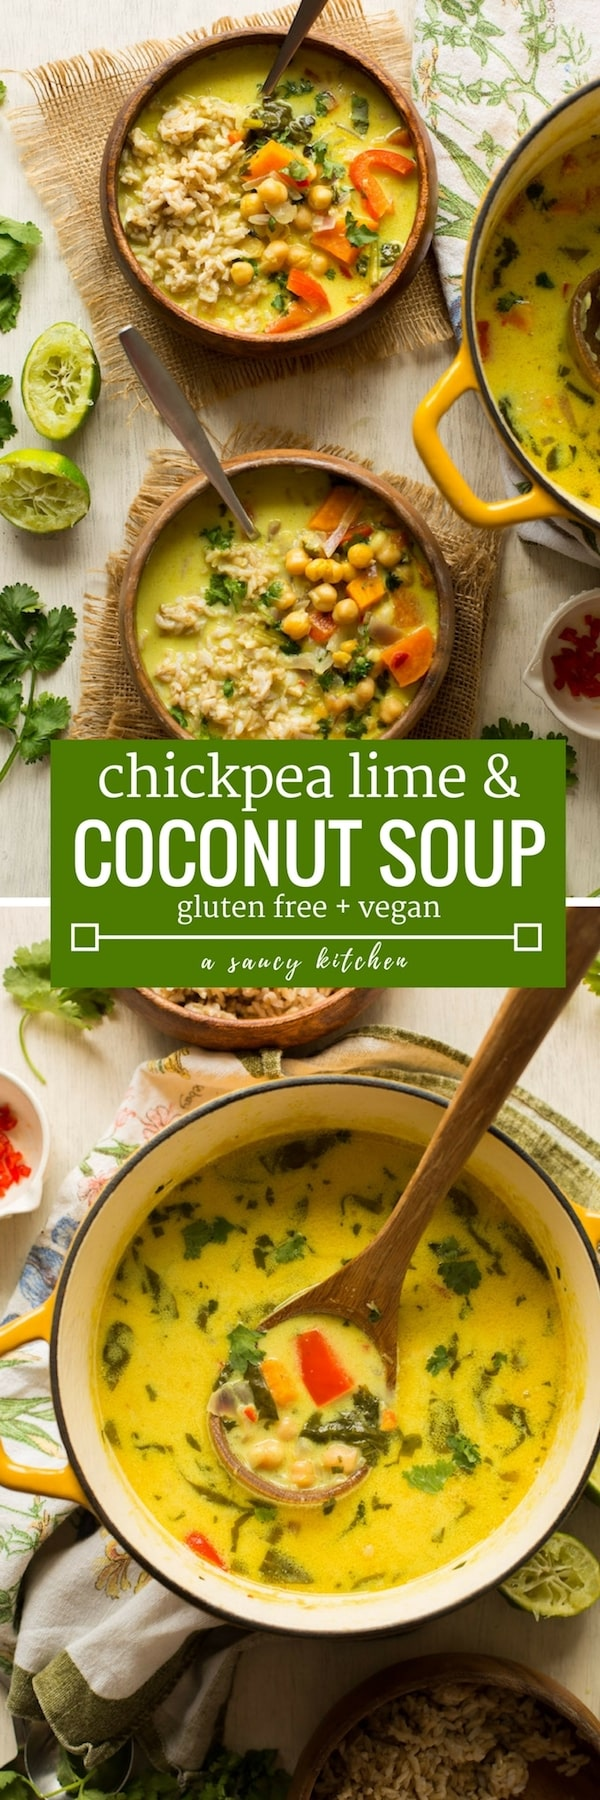 30 minute Chickpea Lime & Coconut Soup - warm, satisfying & easy to make! | #GlutenFree + #Vegan + #GrainFree #soup #coconut #healthydinner